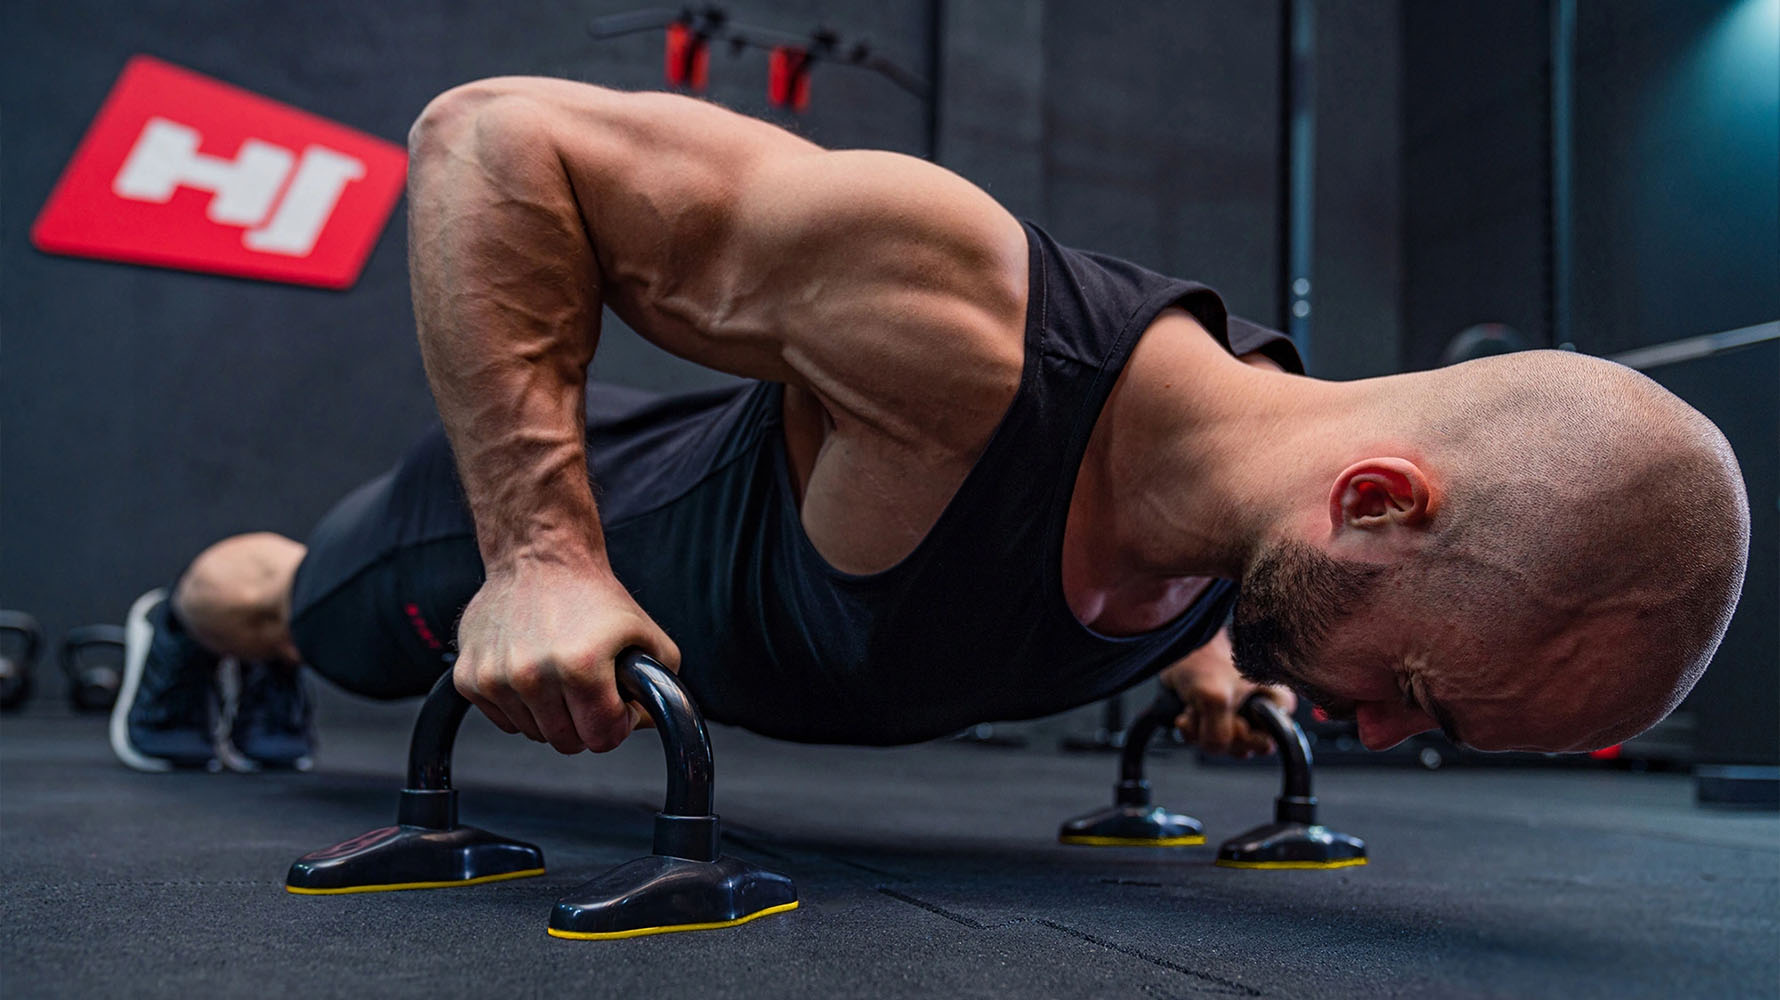 other forms of push-up